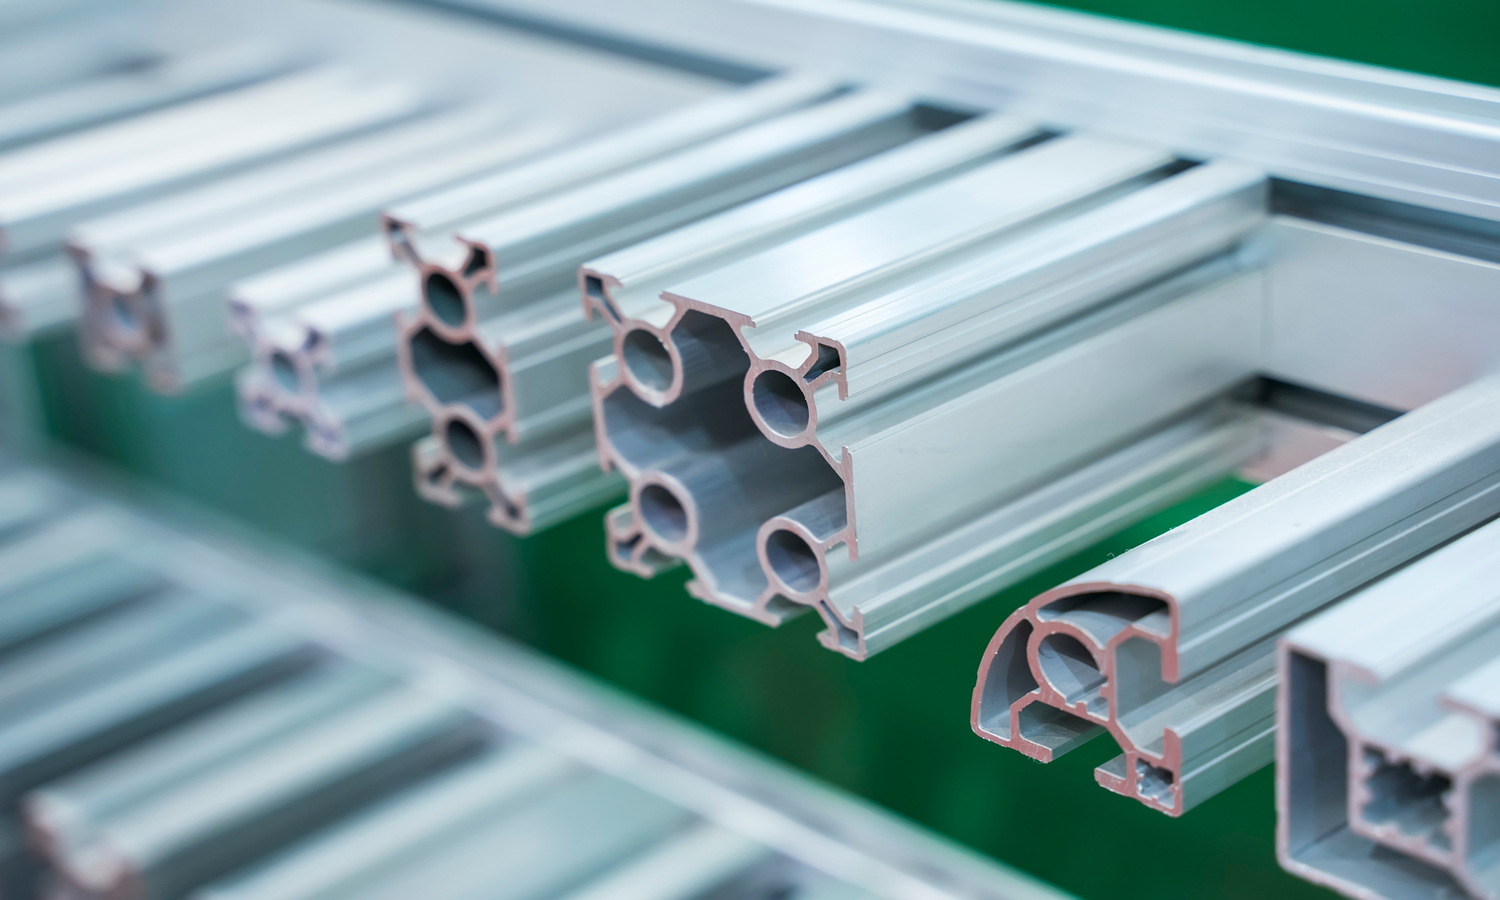 A close up of extruded aluminium. Photo by Shutterstock/asharkyu.